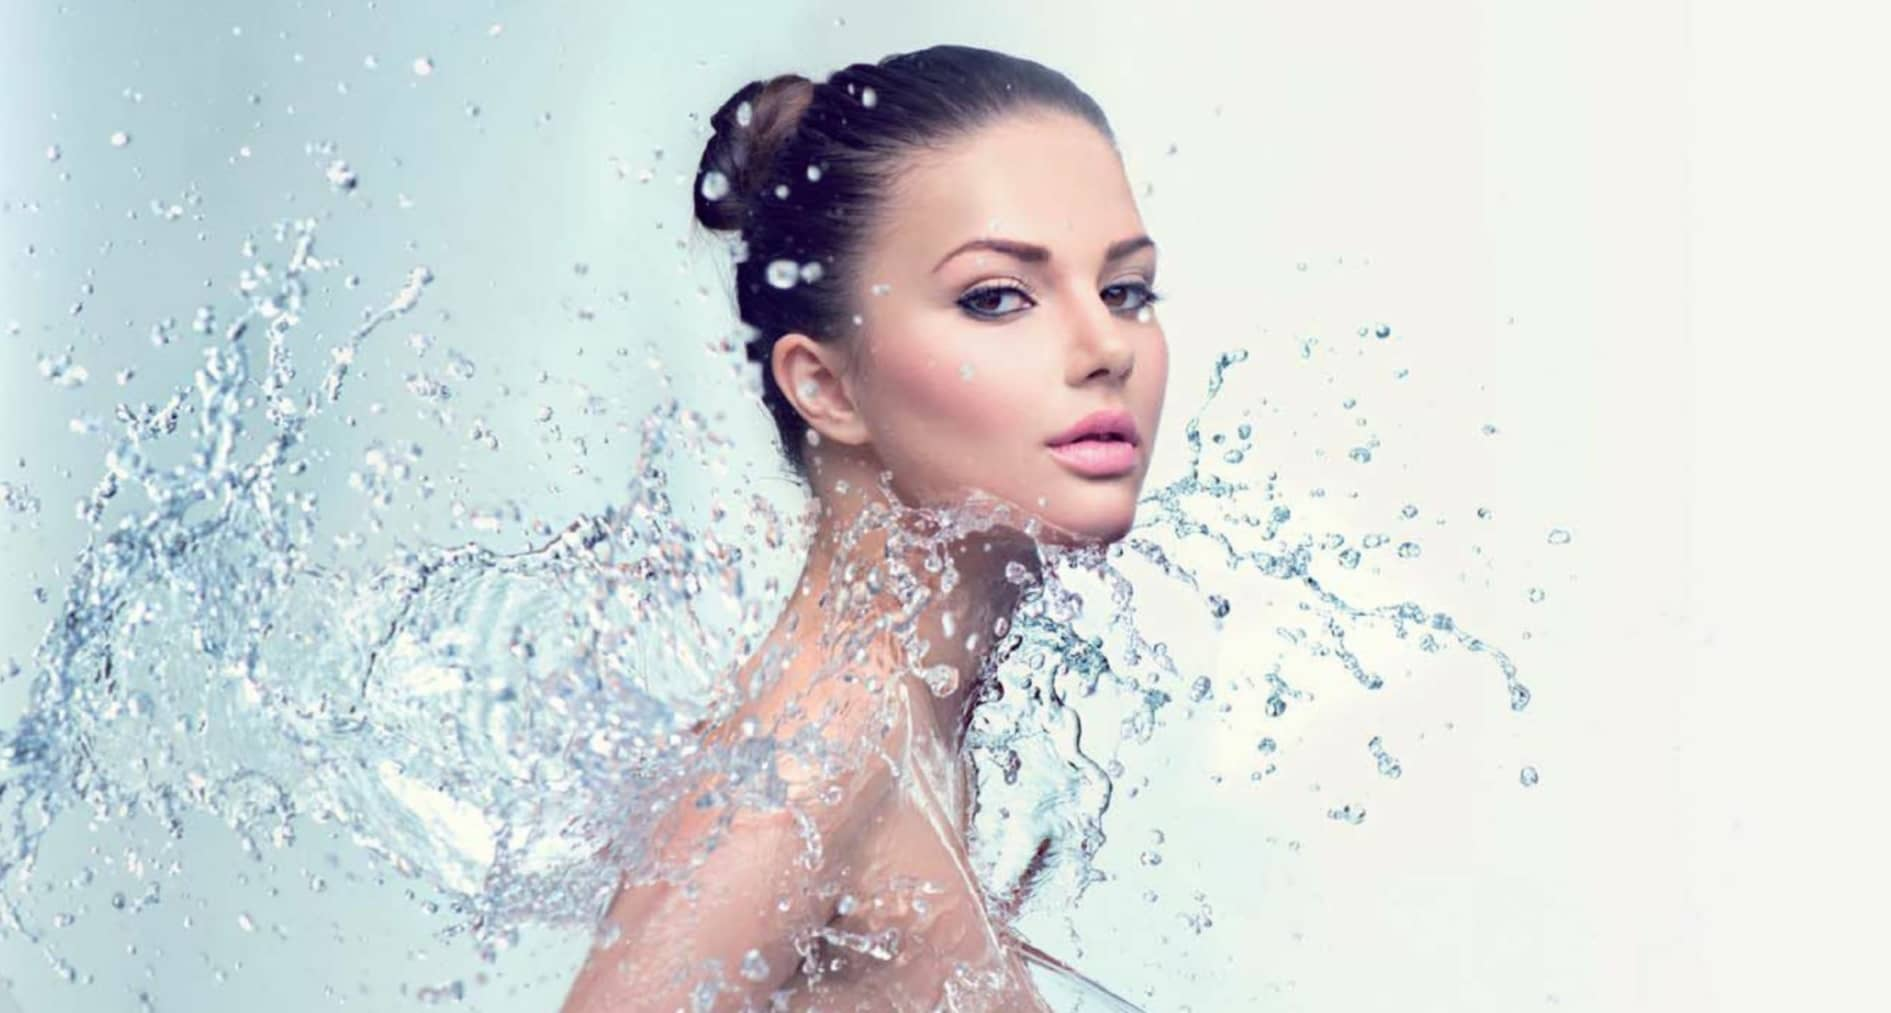 Hyaluronic Acid - The Truth About It